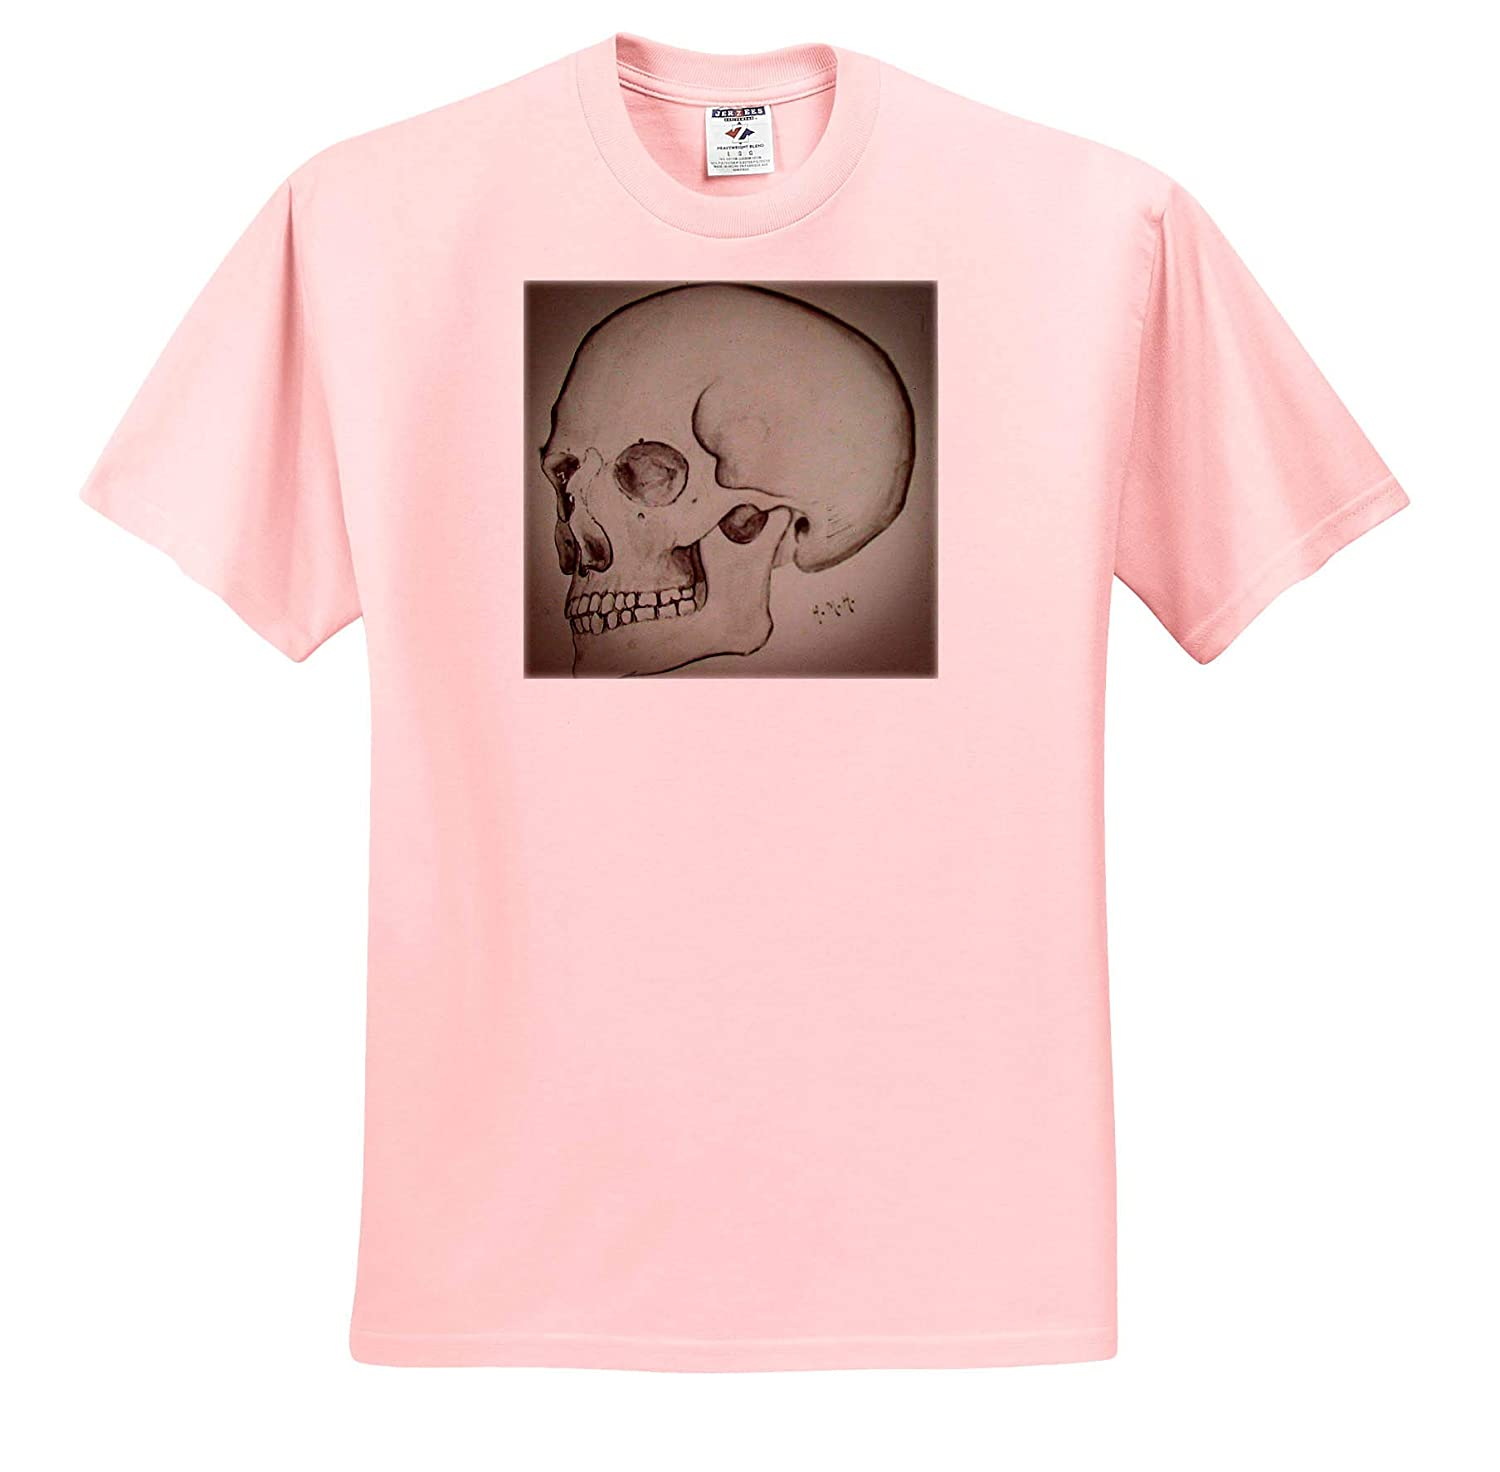 1920s Medical School Teaching Slide of The Human Skull Vintage 3dRose Scenes from The Past Magic Lantern T-Shirts